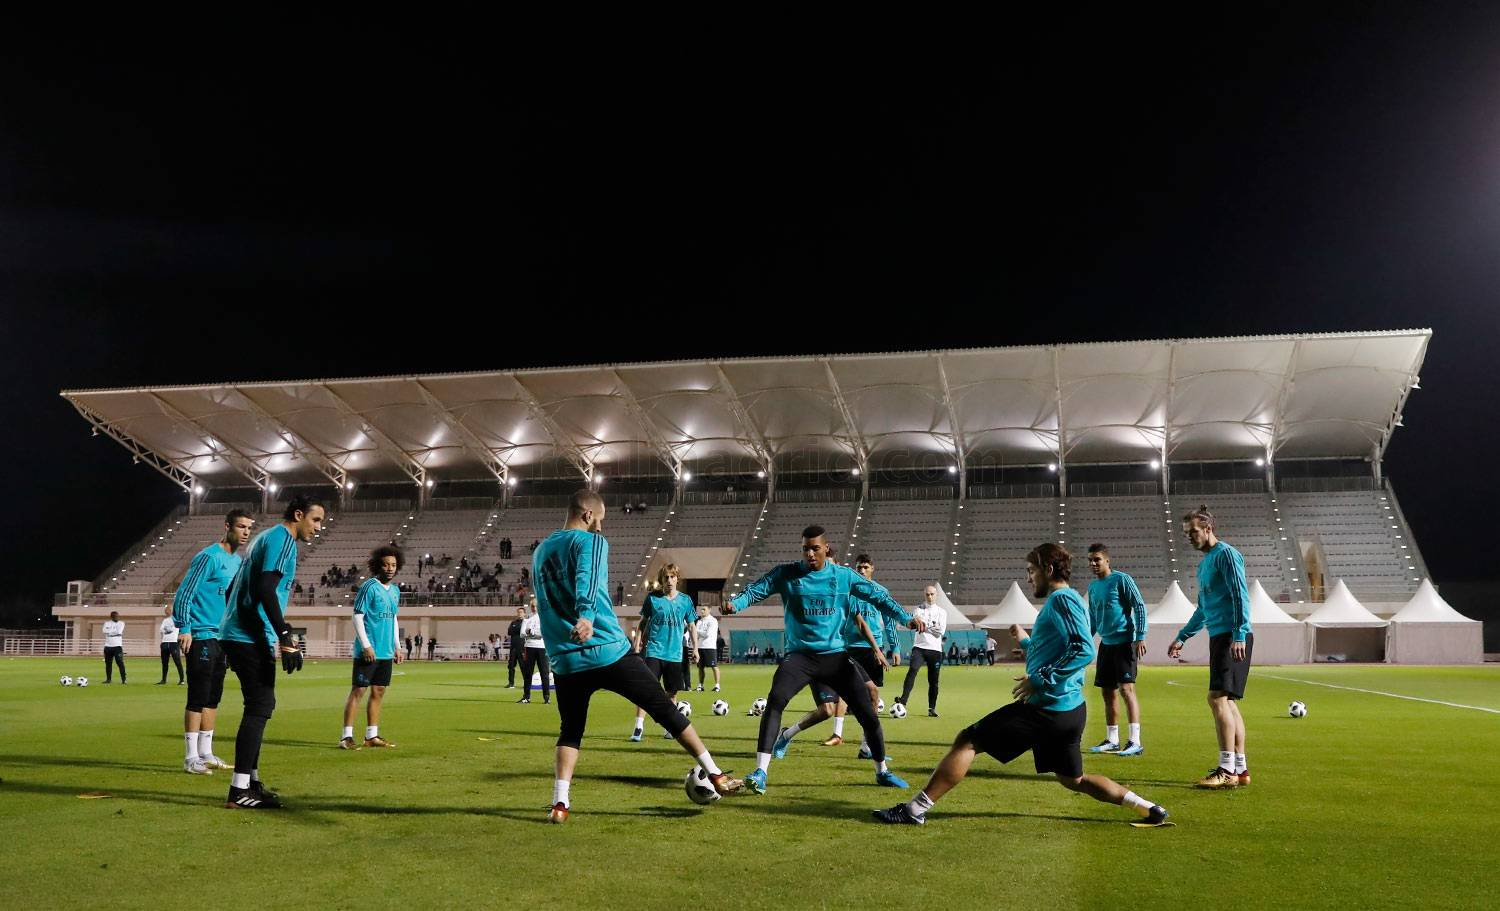 Real Madrid - Entrenamiento del Real Madrid en Abu Dabi - 15-12-2017